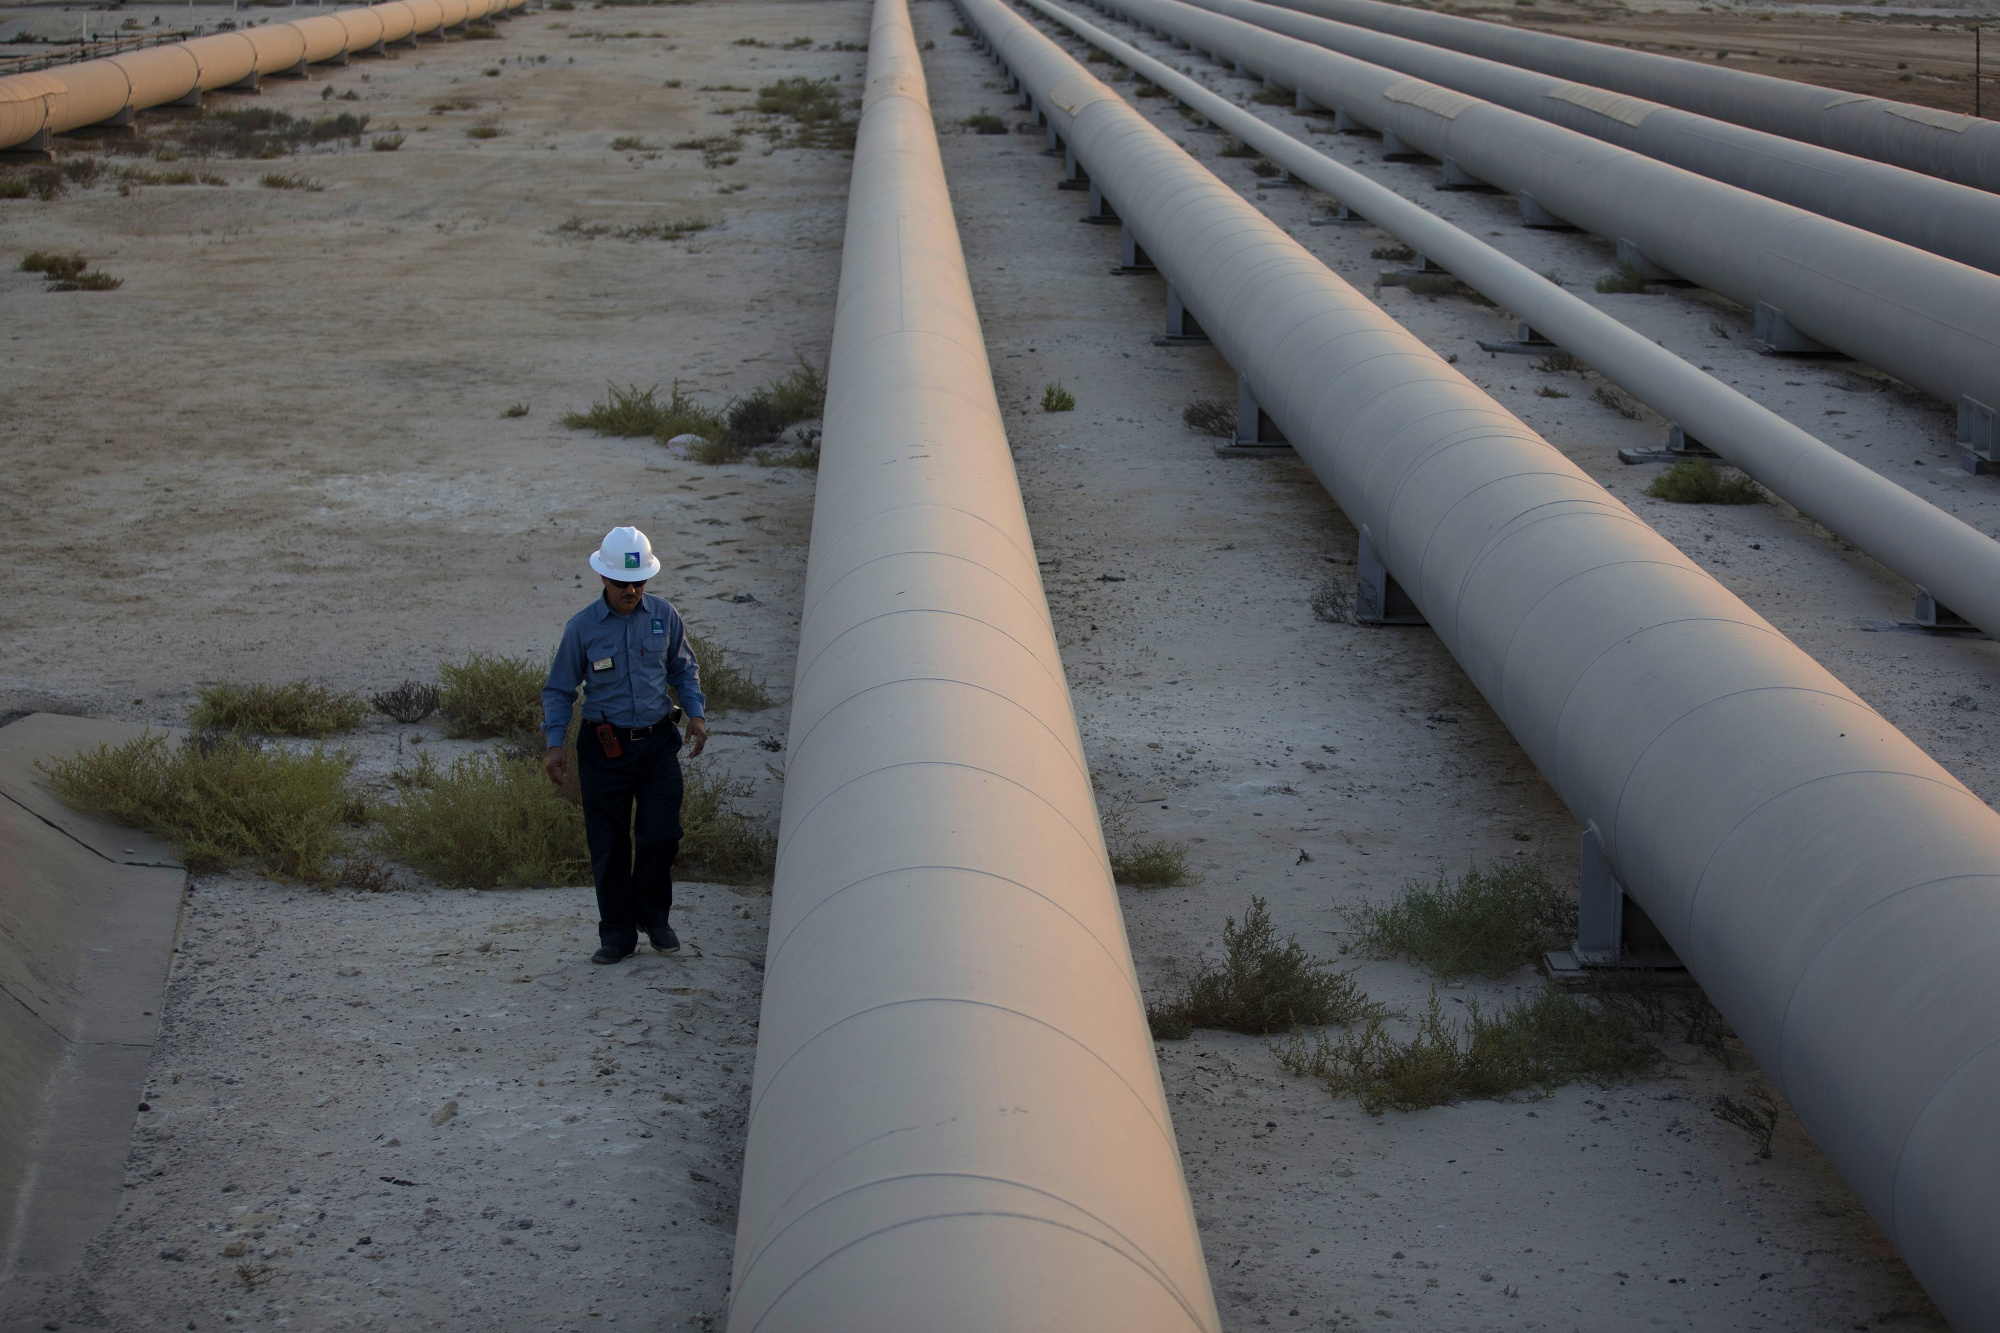 Saudi Pipeline Attack Highlights Risk to Middle East Oil Exports